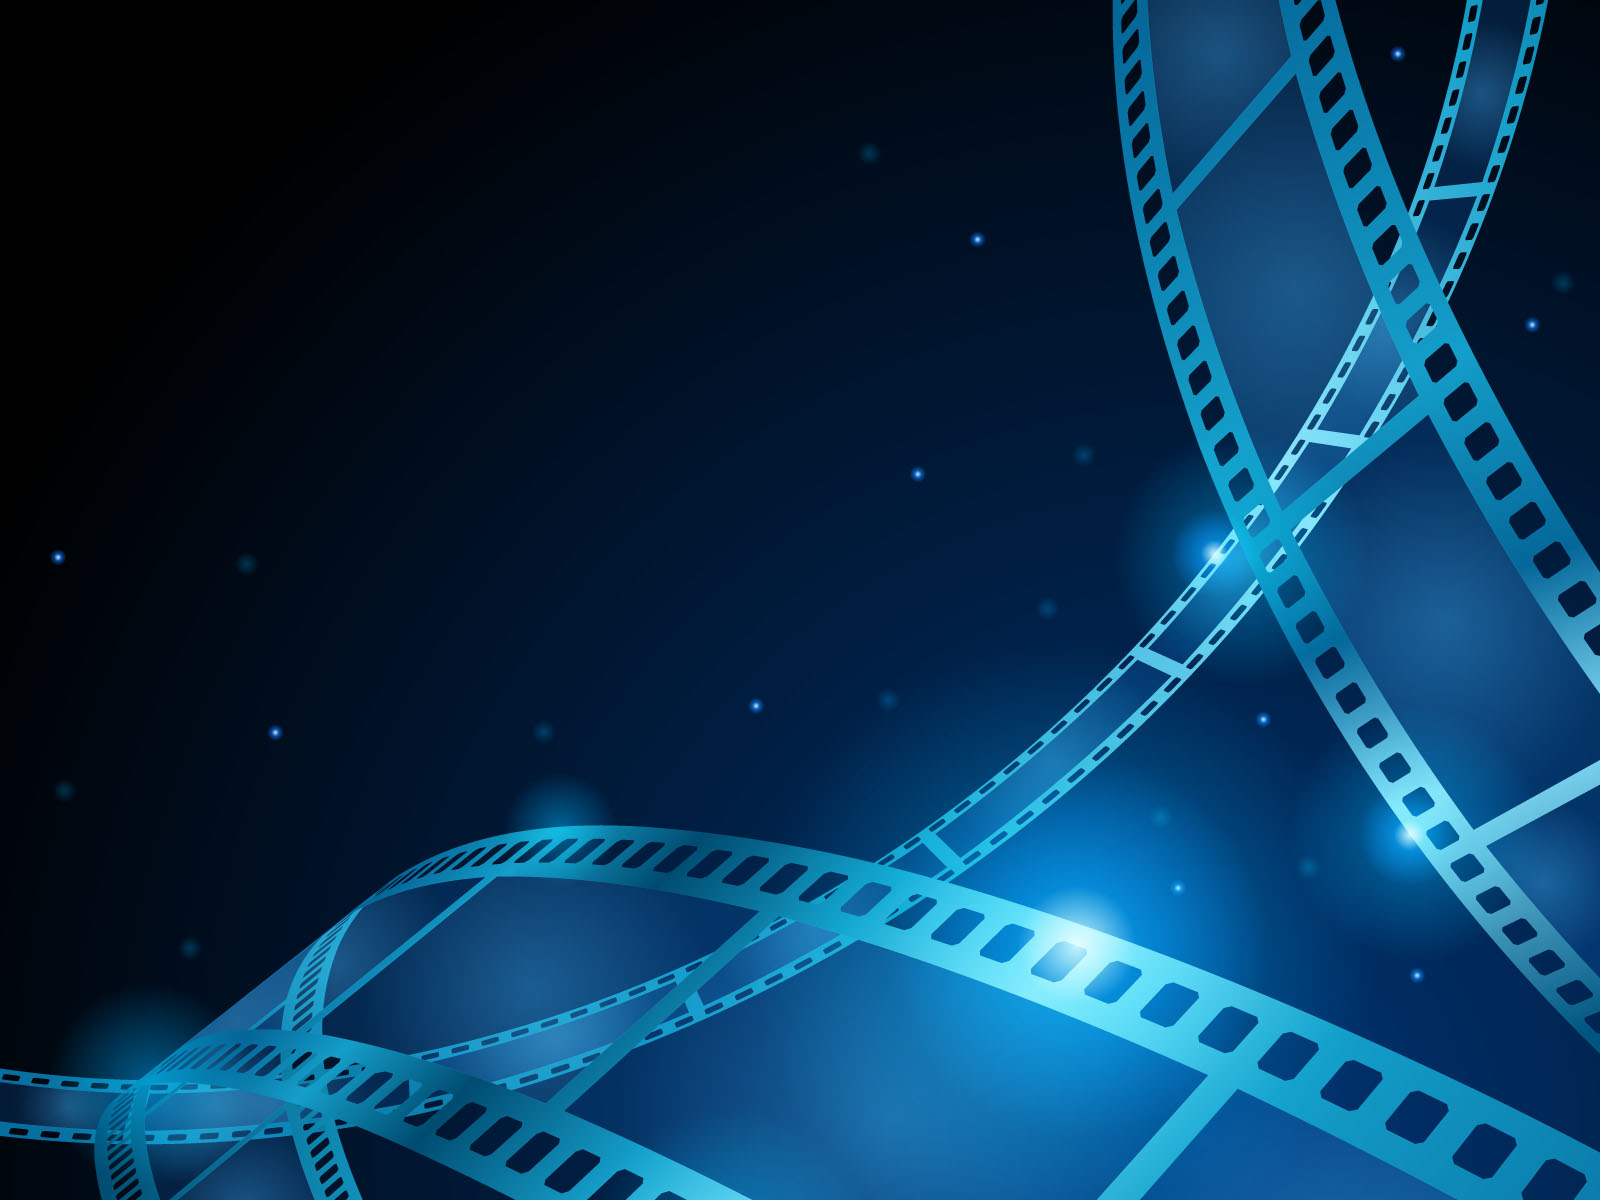 Blue Movie Film Strip Backgrounds Abstract Blue Business